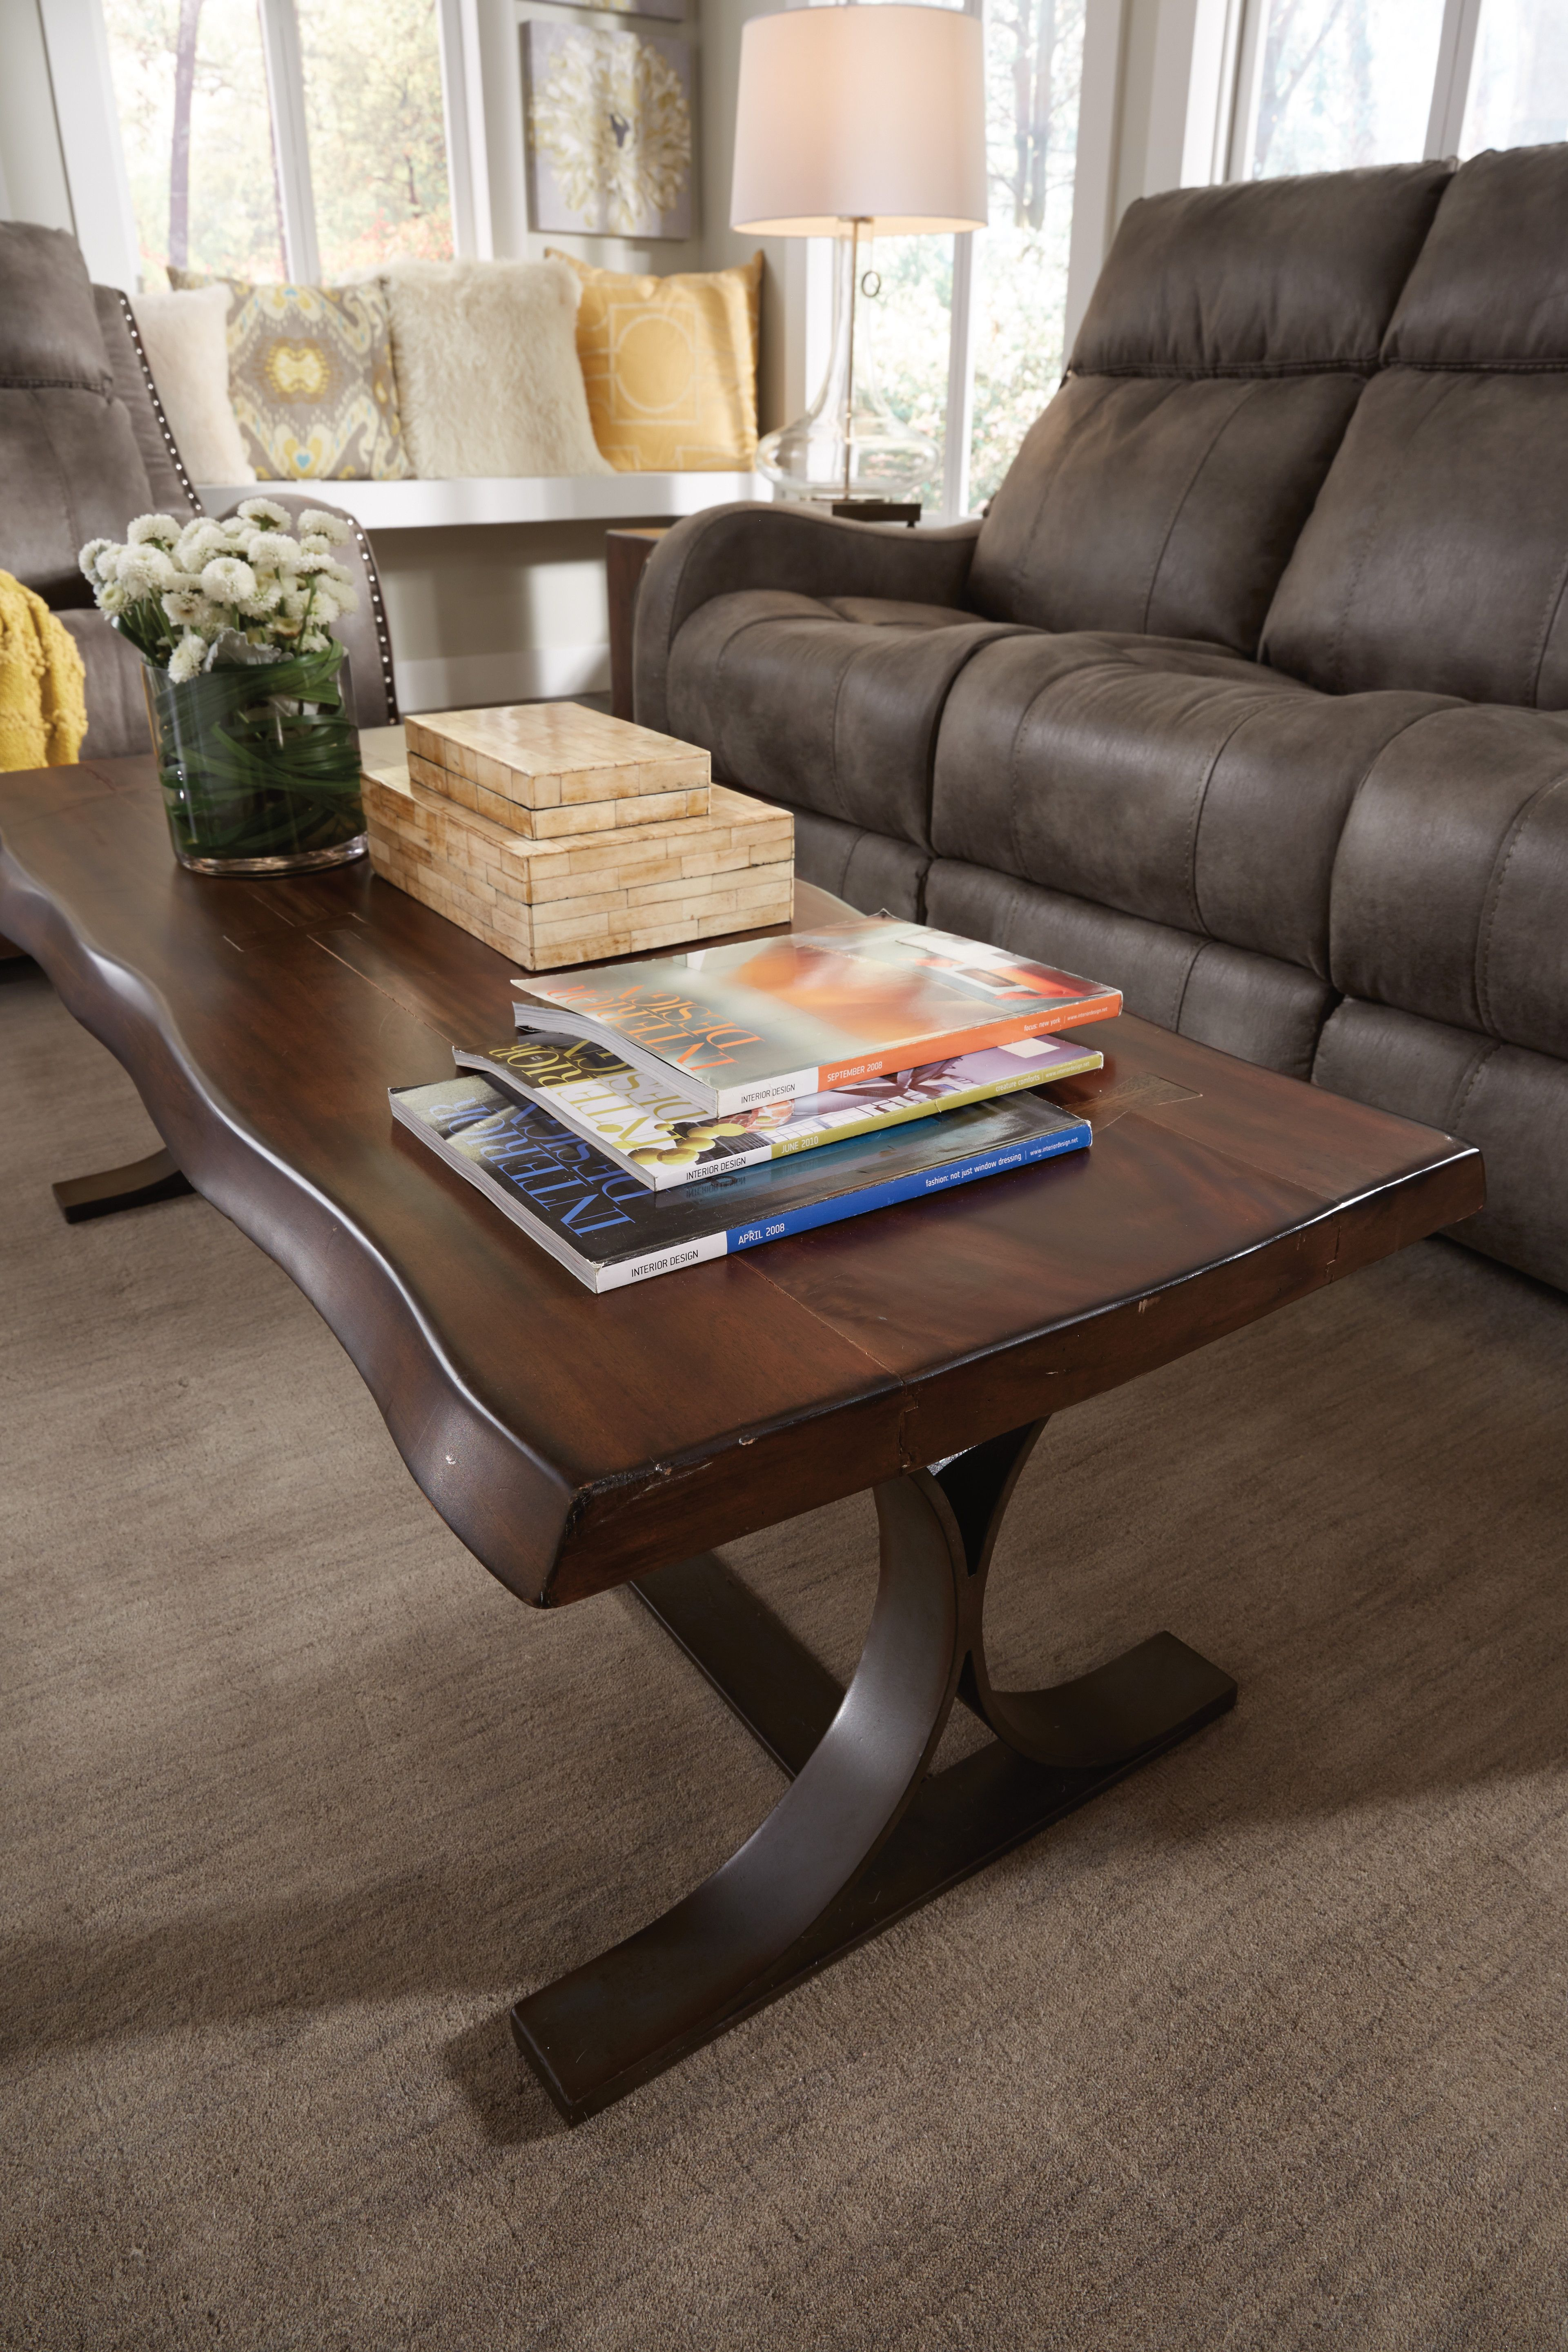 The Farrier Coffee Table S Signature Butterfly Key Joinery And Thick Wavy Edges Make It A Bold Statement In Any Room Coffee Table Furniture Table [ 5760 x 3840 Pixel ]